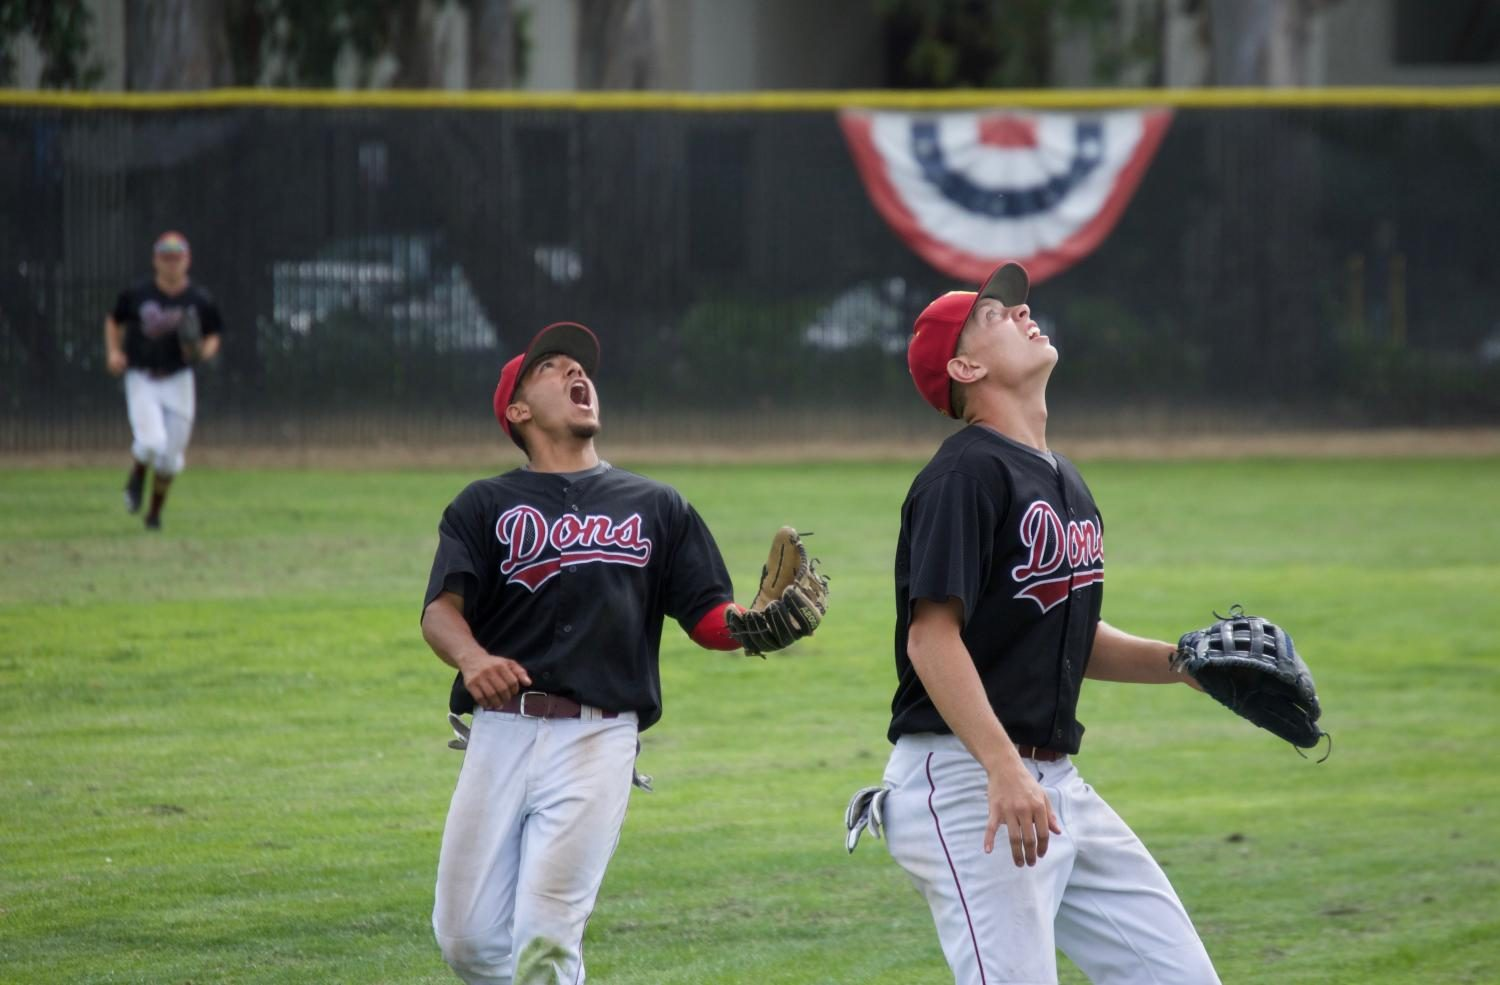 De Anza College third baseman Riki Desa calls off shortstop Chris Ramos before a inning ending flyout in a 7-2 loss to Cabrillo College on April 4, at Baylands Field.